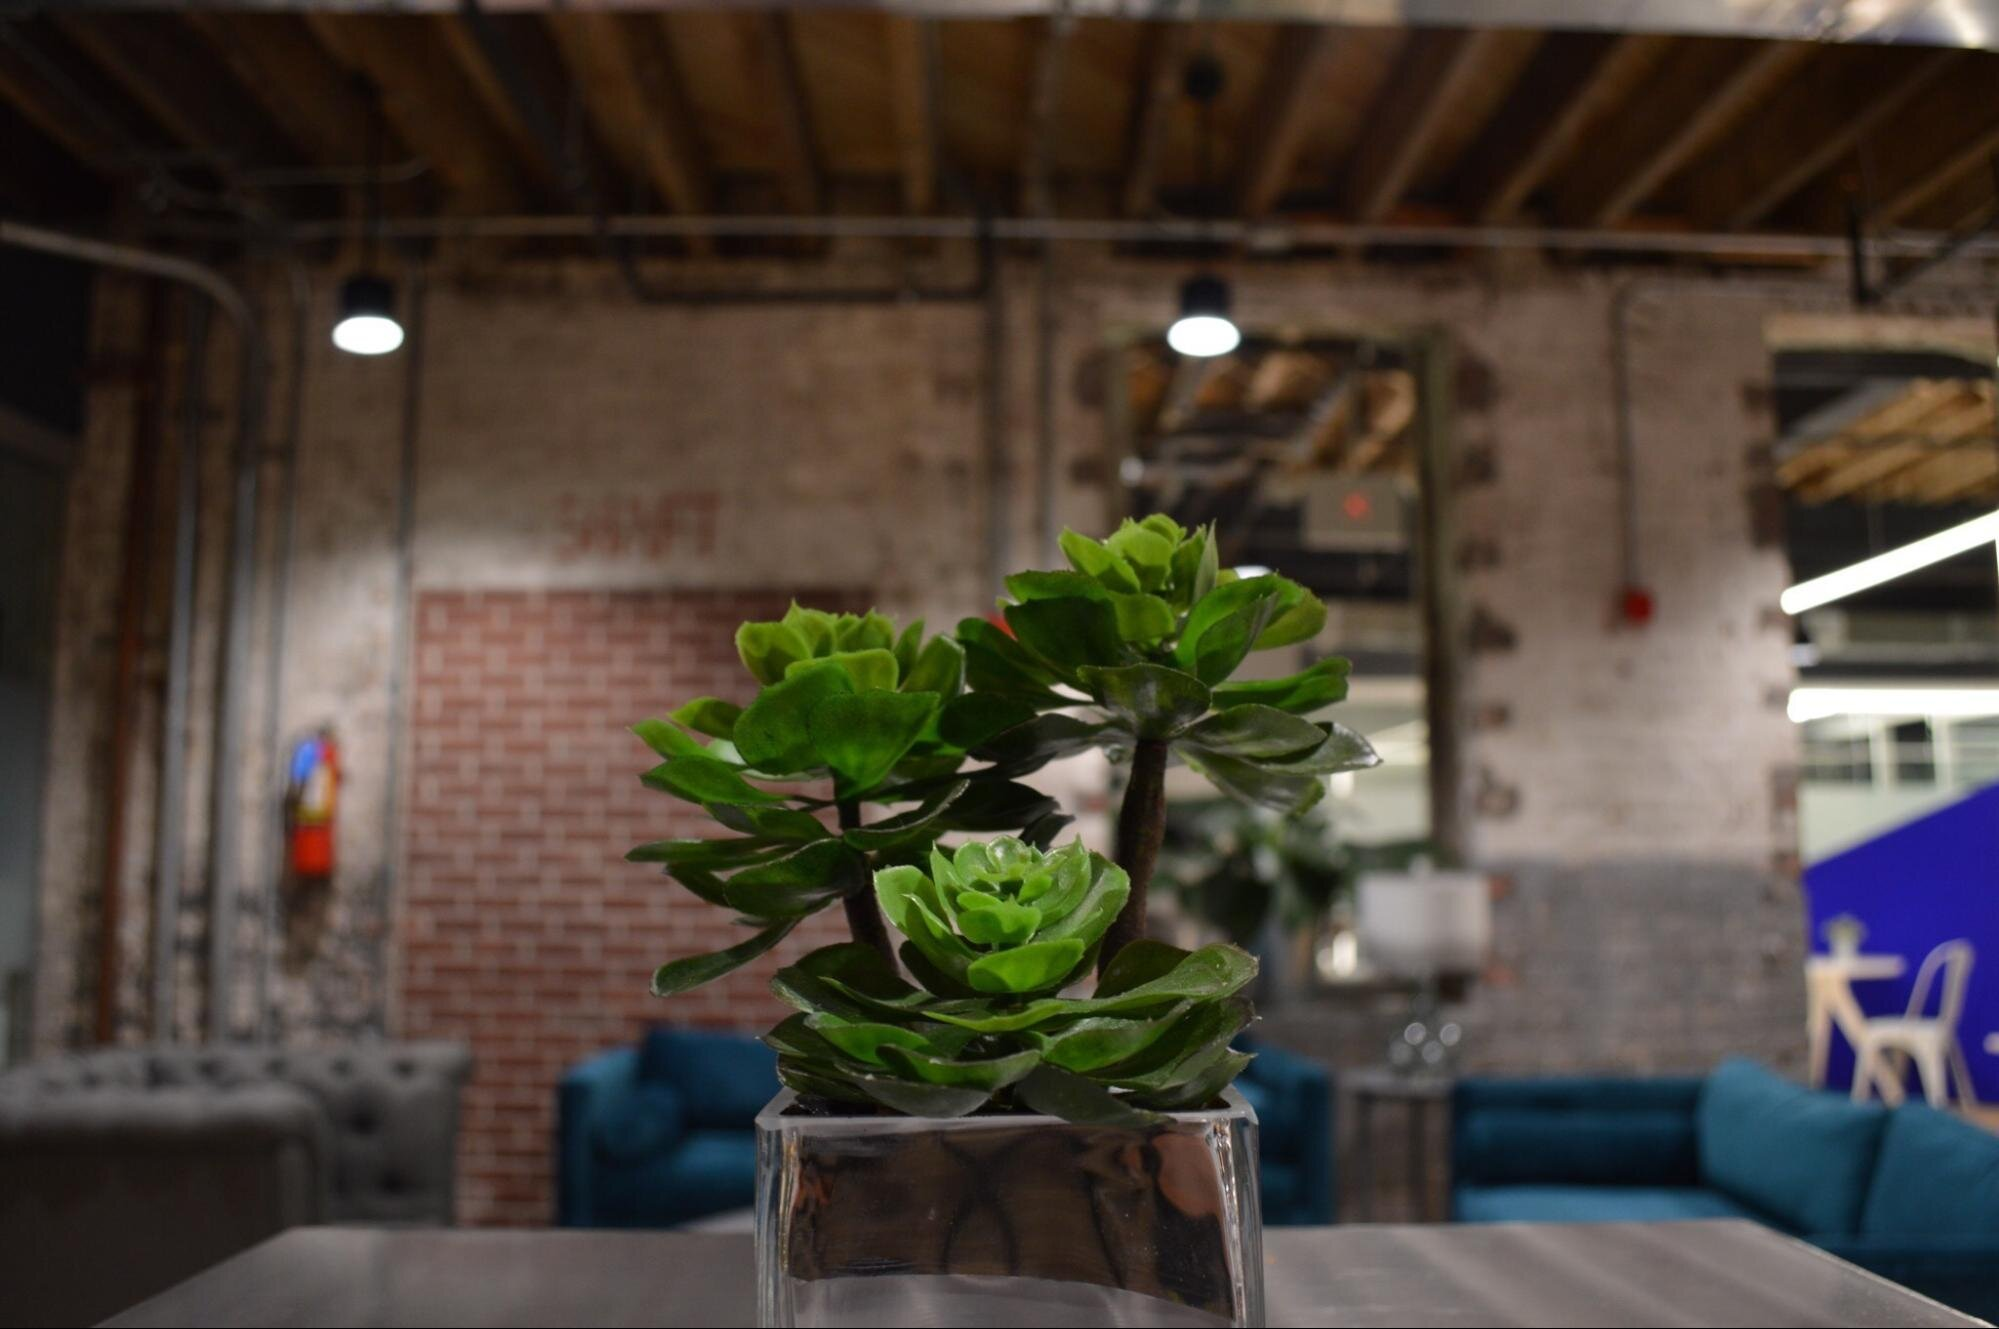 Plant on a table in an industrial-looking workspace